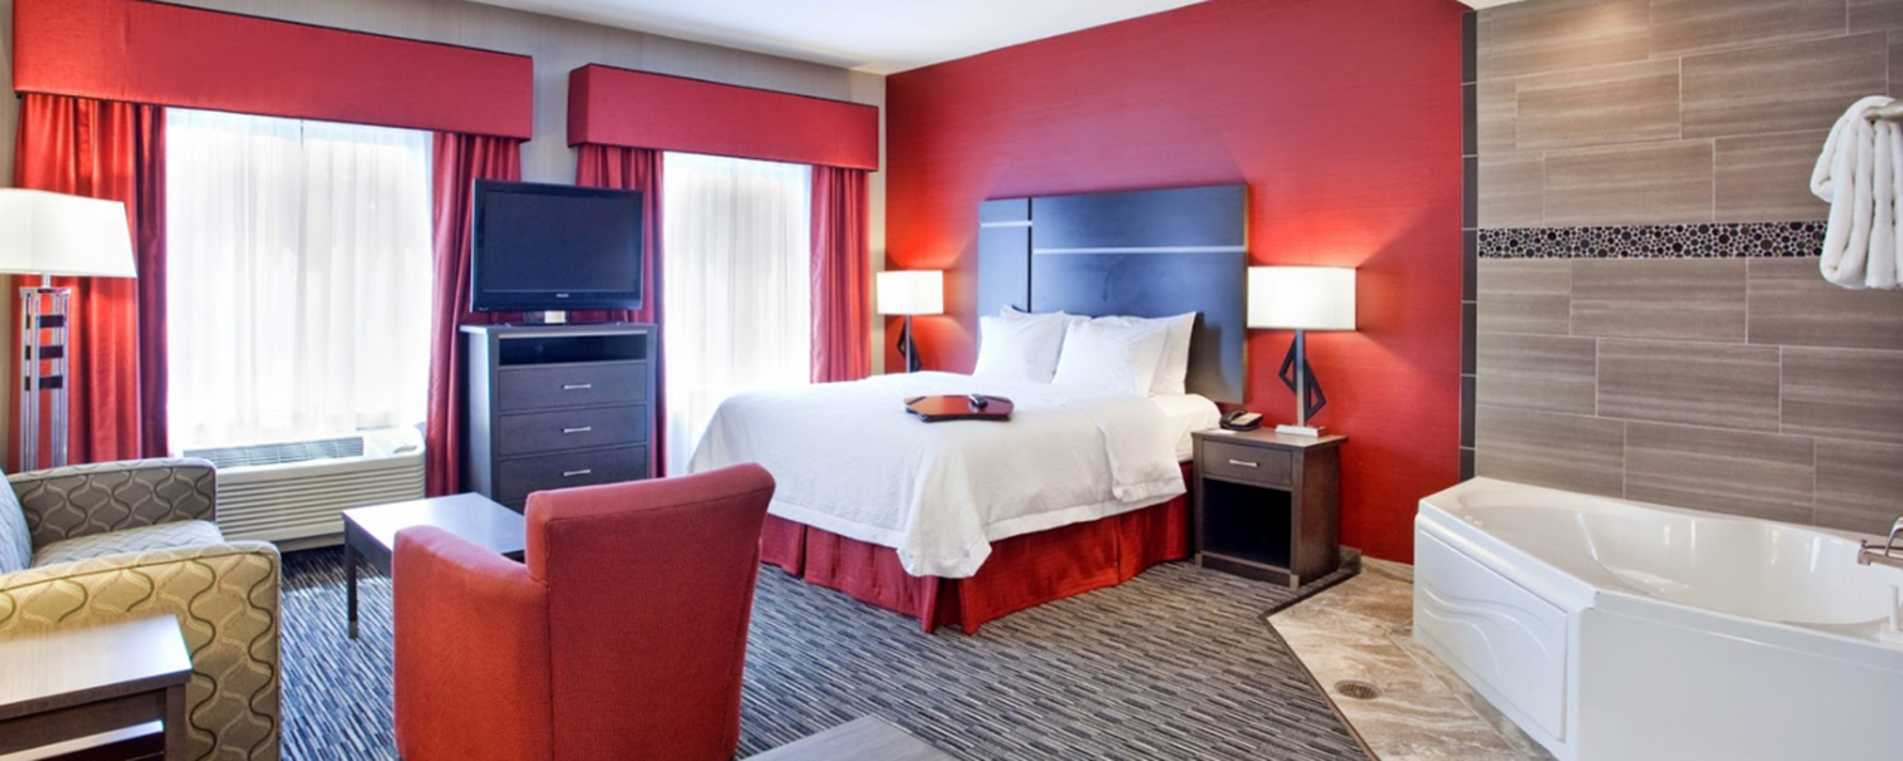 King Room- Hampton Inn & Suites Temecula